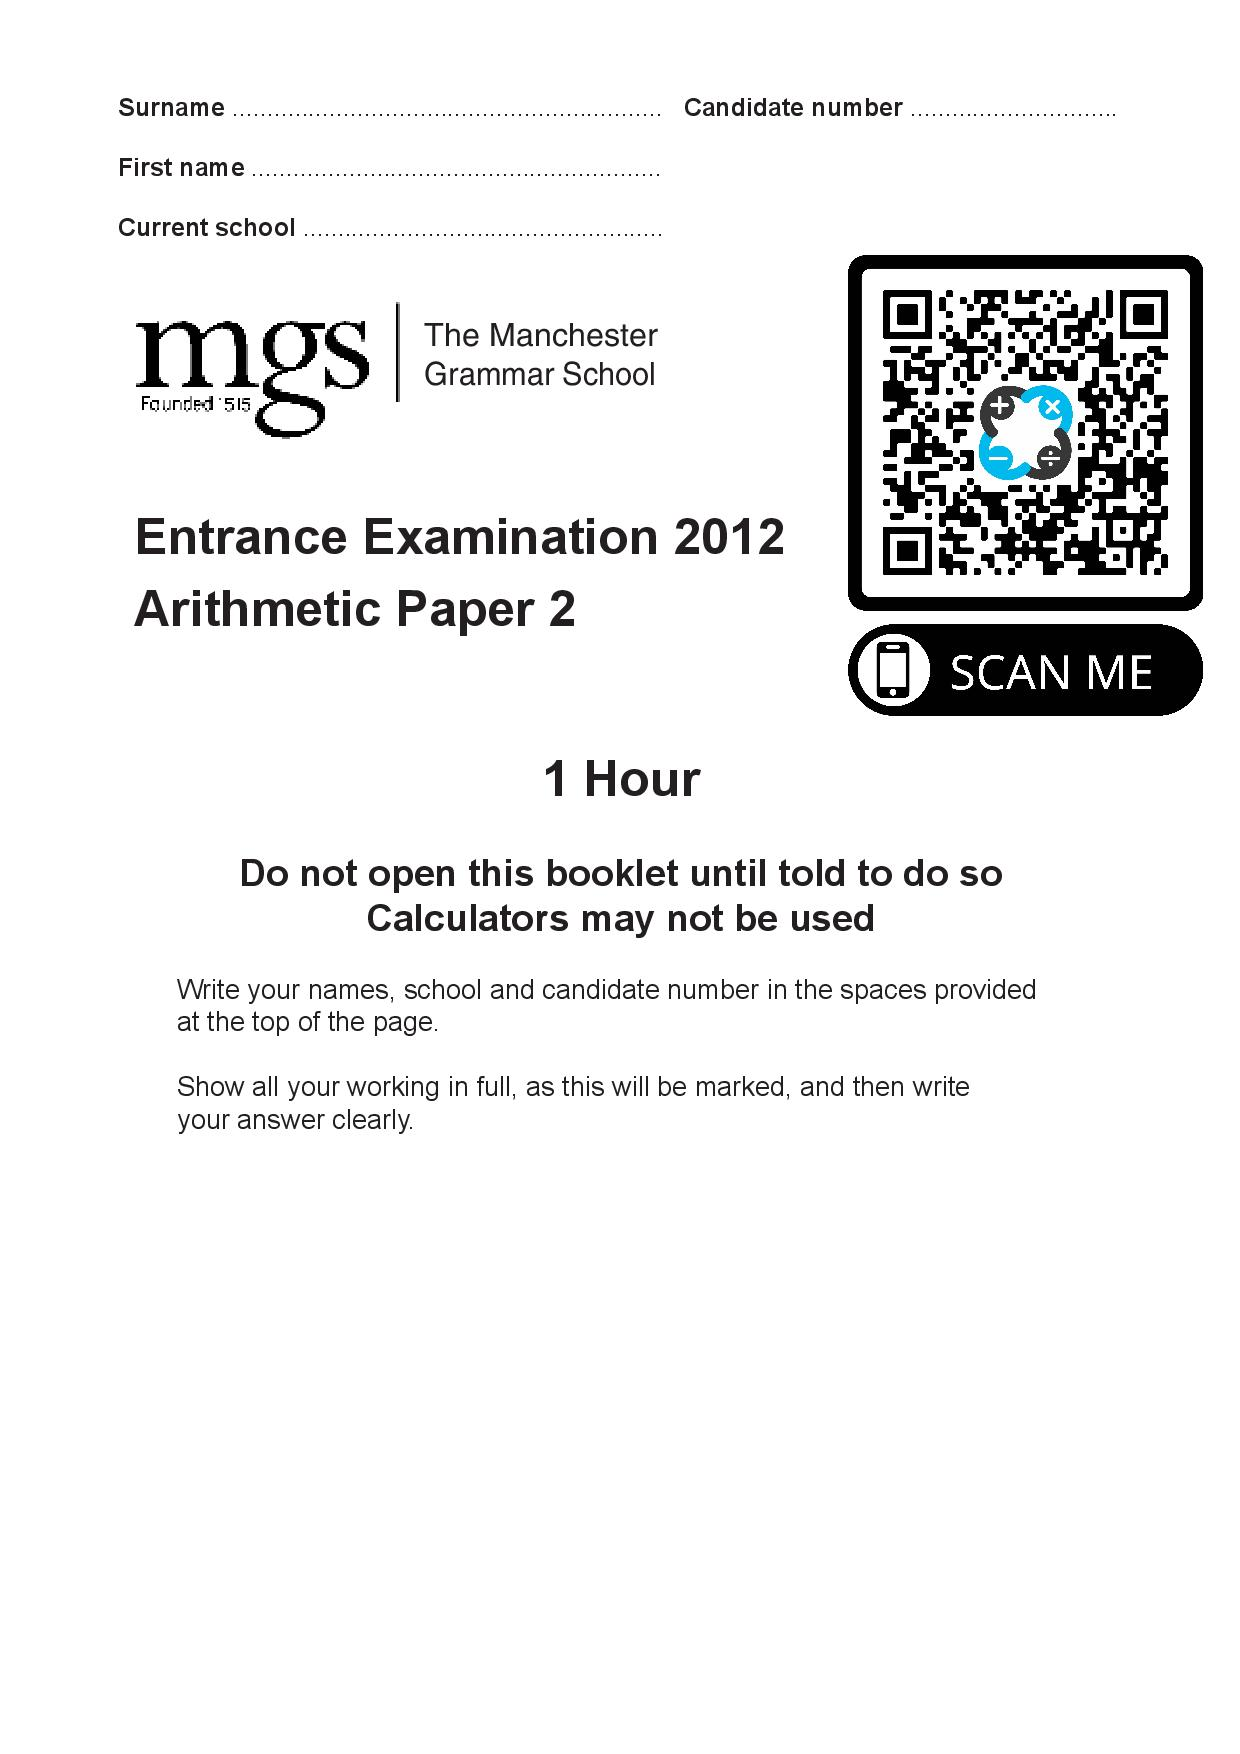 The Manchester Grammar School Entrance Examination 2012 Arithmetic Paper 2 Questions Paper page 001